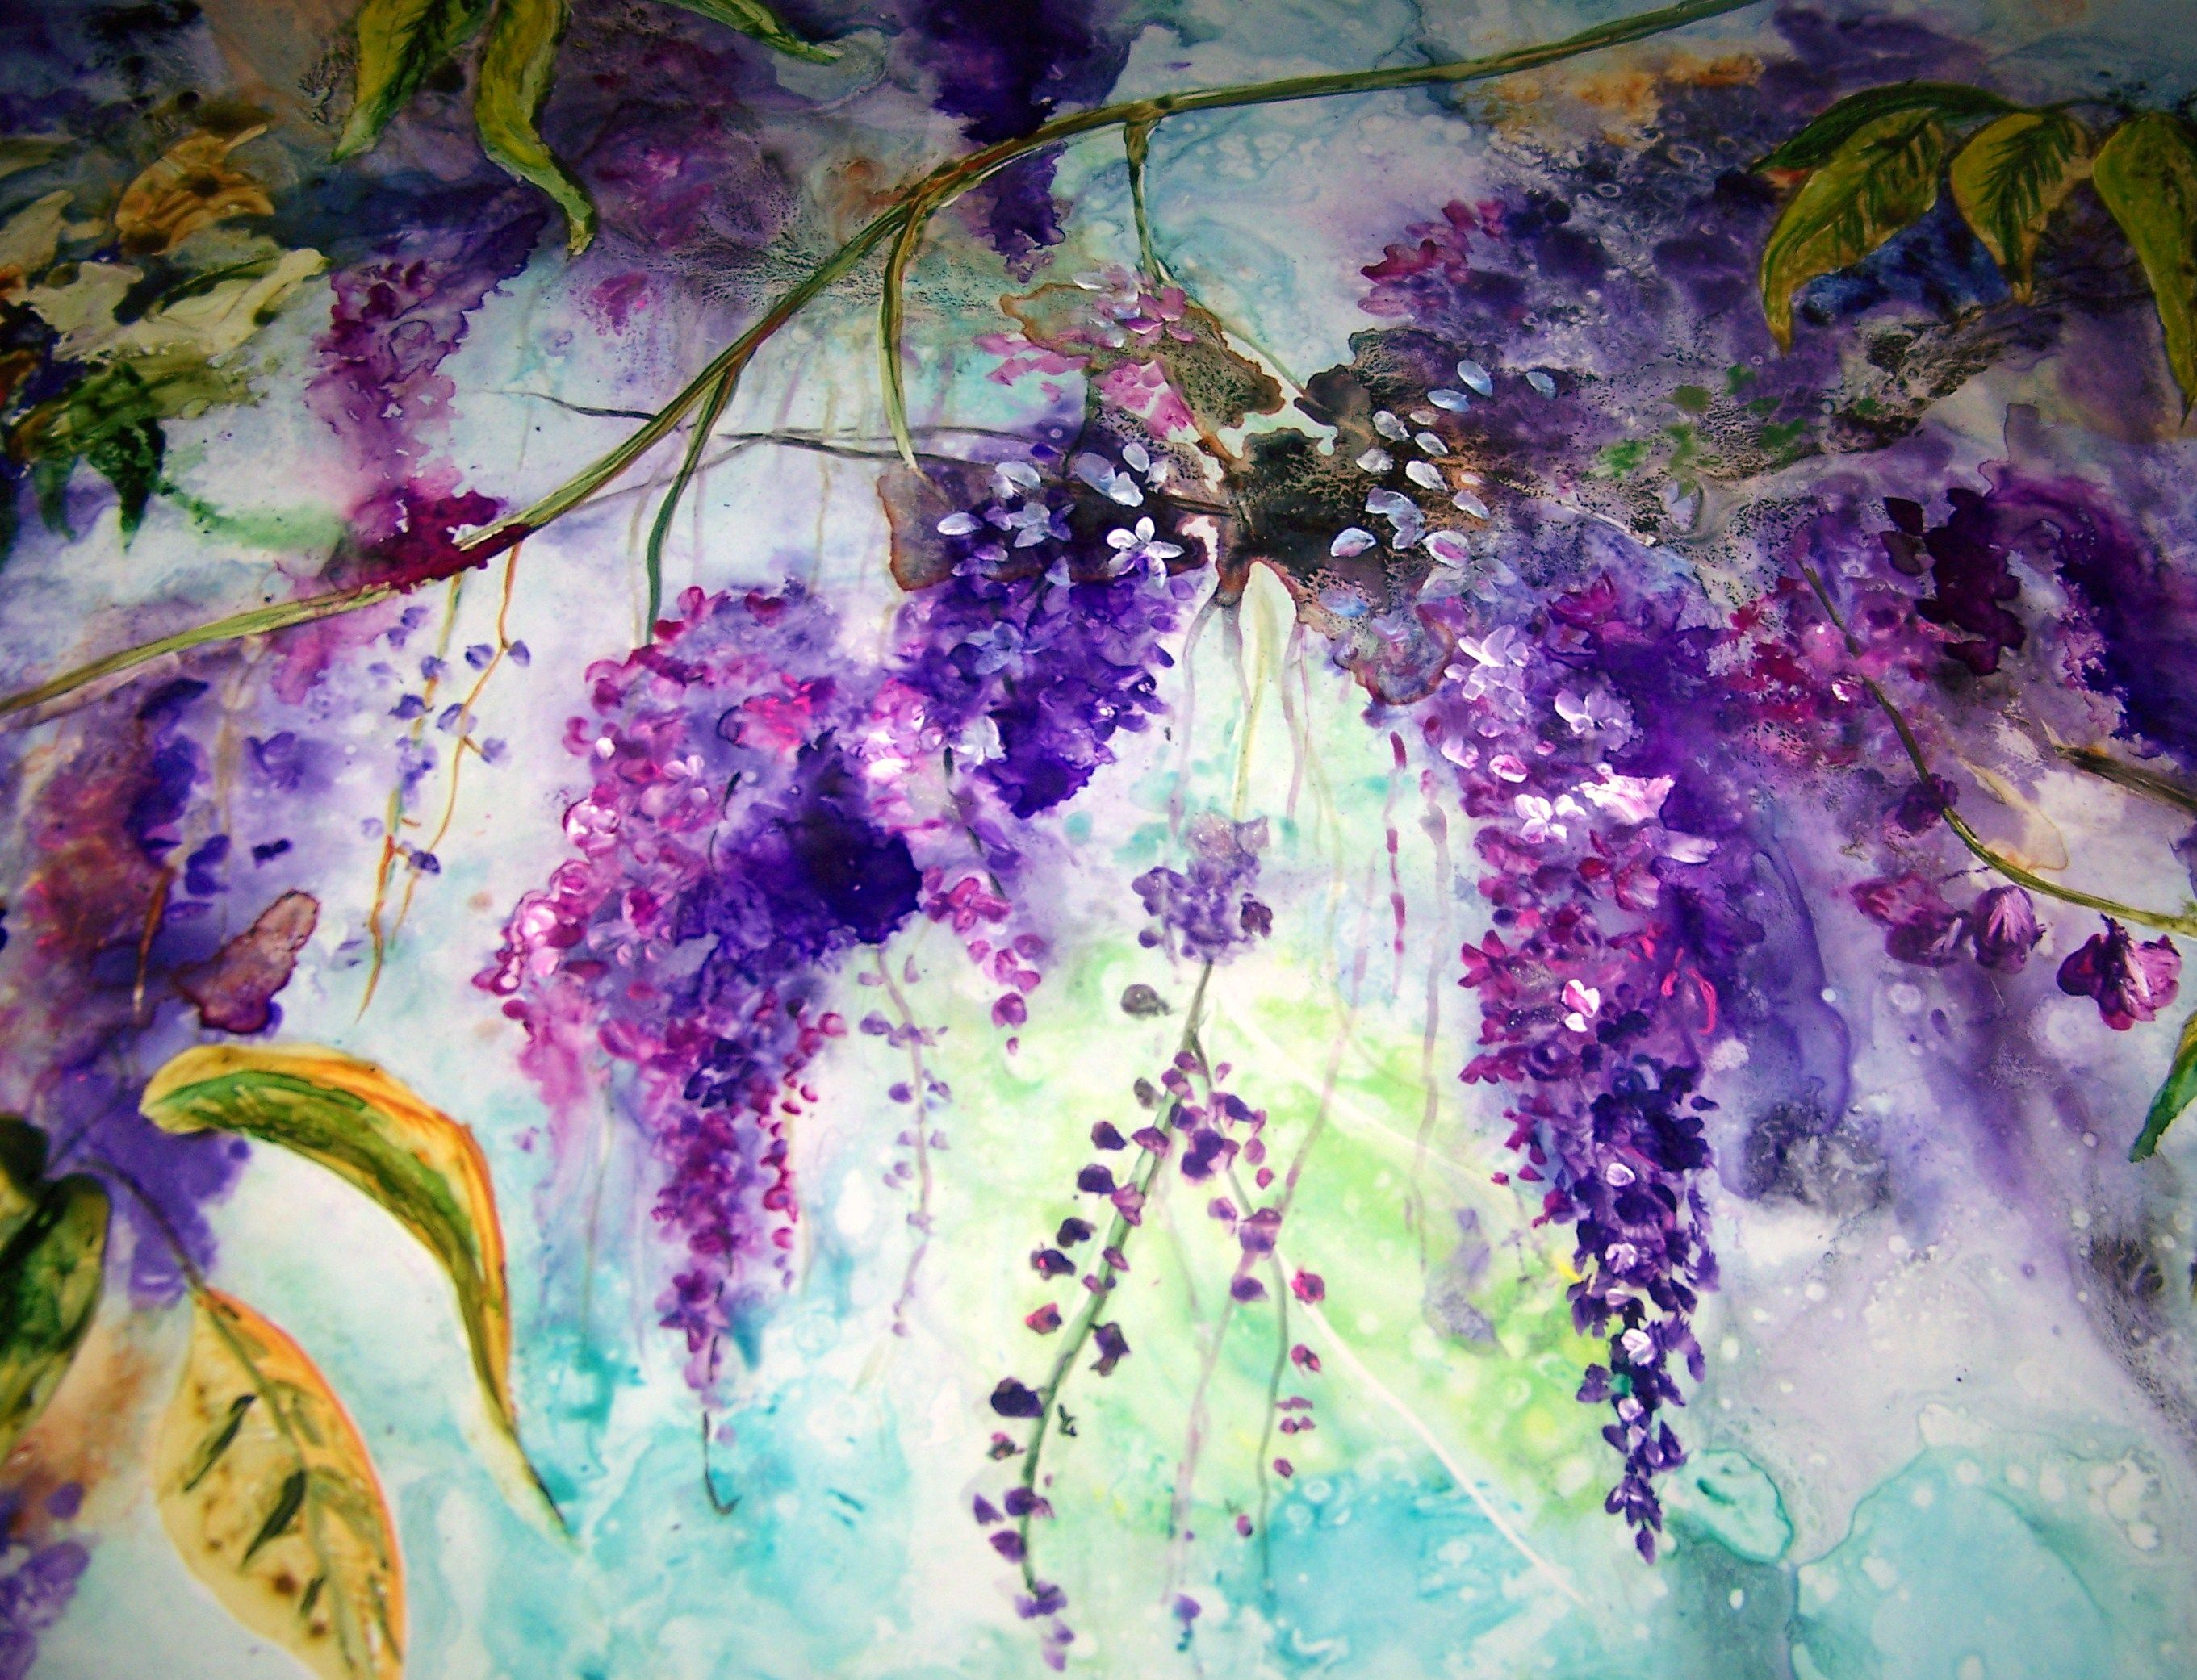 Large Watercolor Wisteria Painting For Sale On Yupo Paper